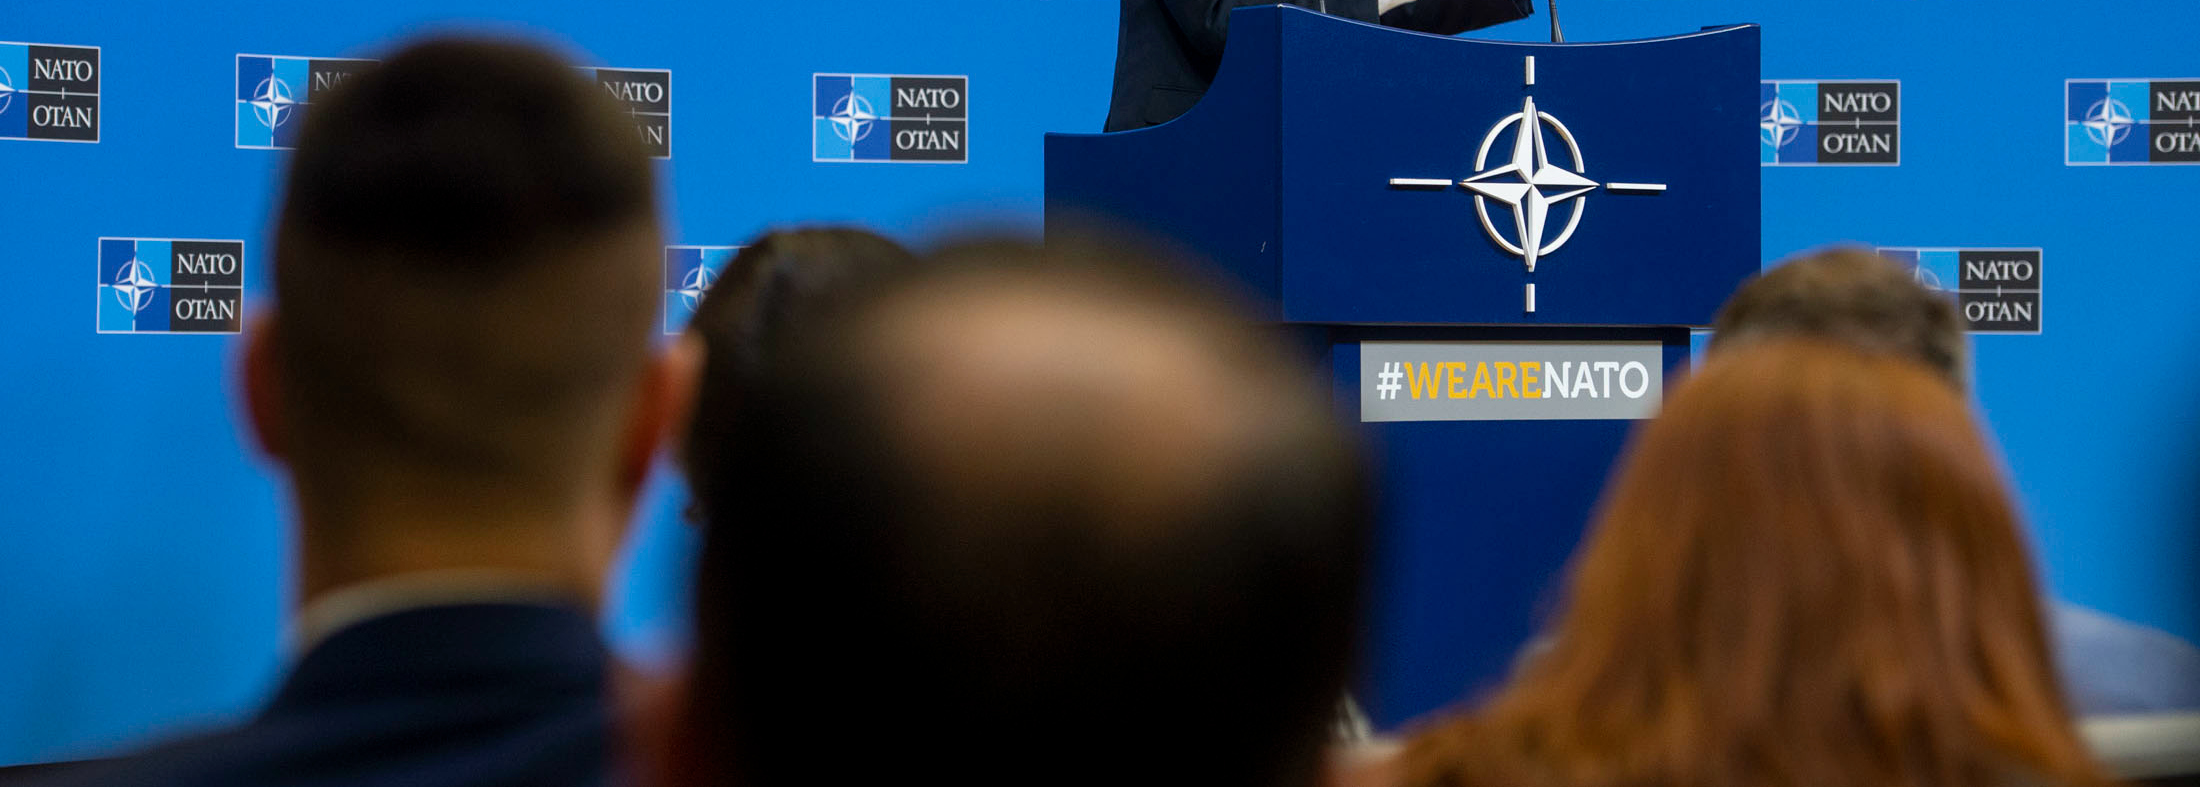 Press conference by NATO Secretary General Jens Stoltenberg ahead of the meetings of NATO Defence Ministers at NATO headquarters on 13 and 14 February 2019